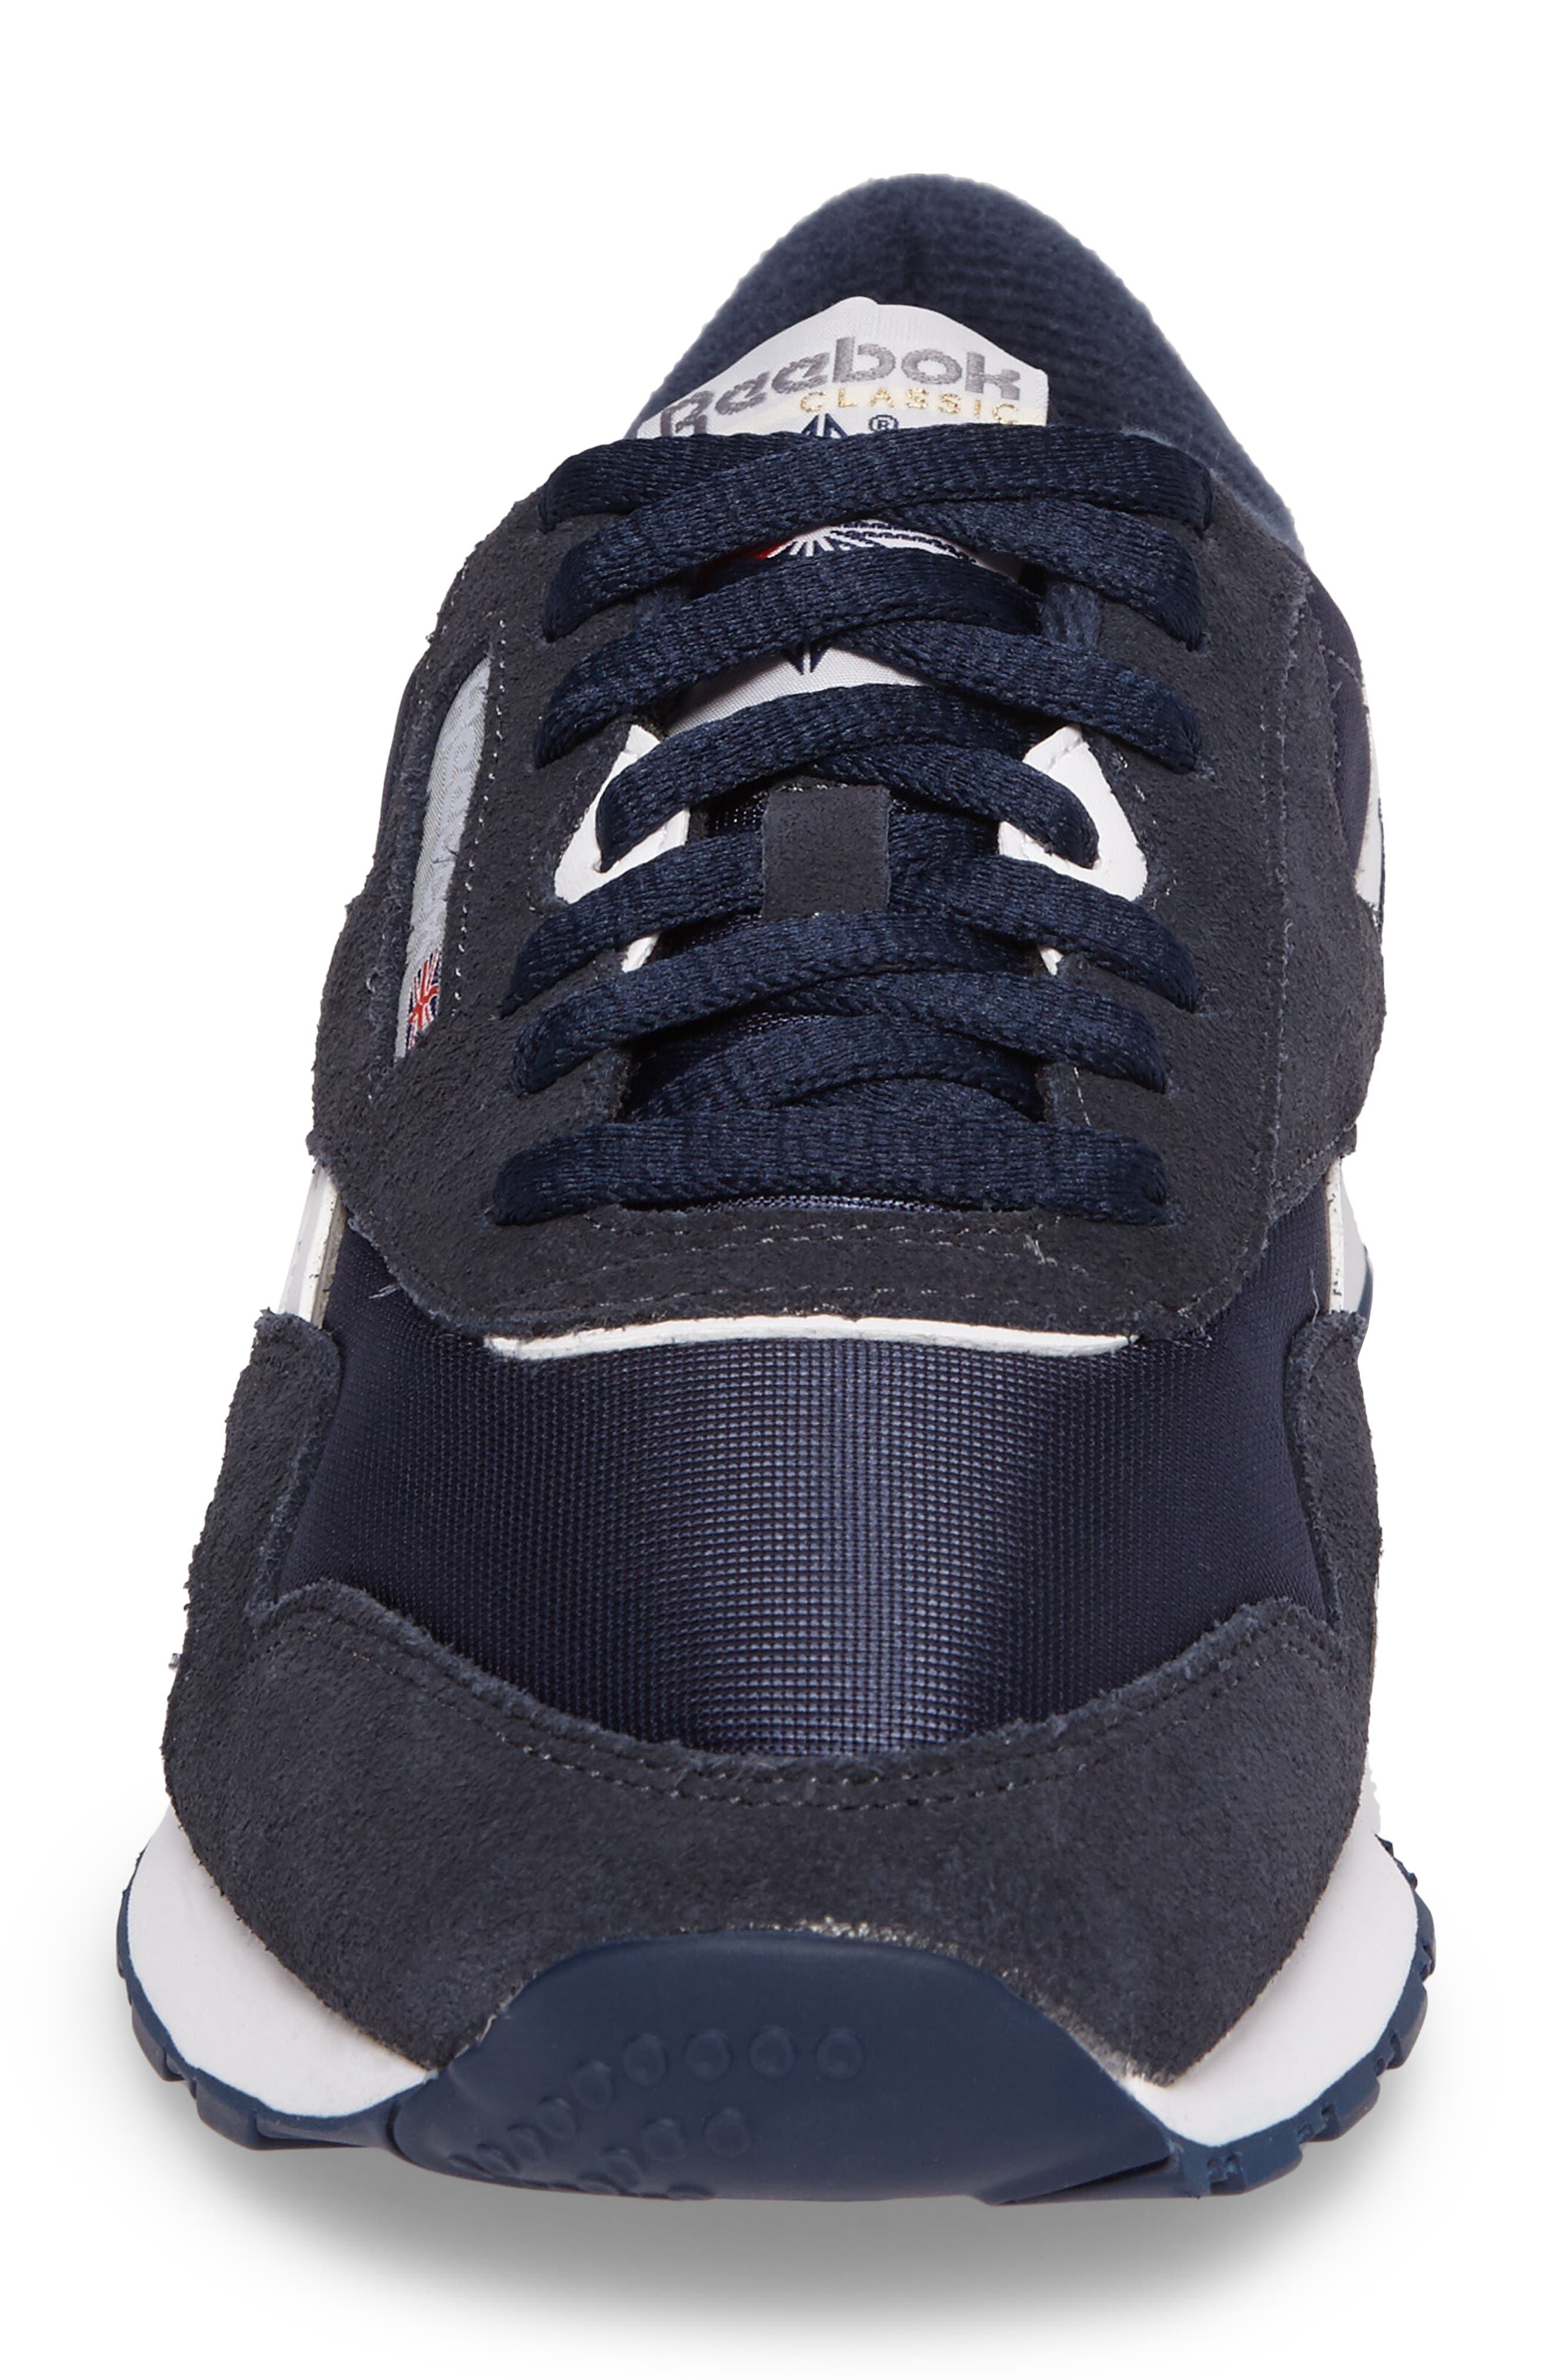 Classic Nylon Sneaker,                             Alternate thumbnail 4, color,                             TEAM NAVY/ PLATINUM